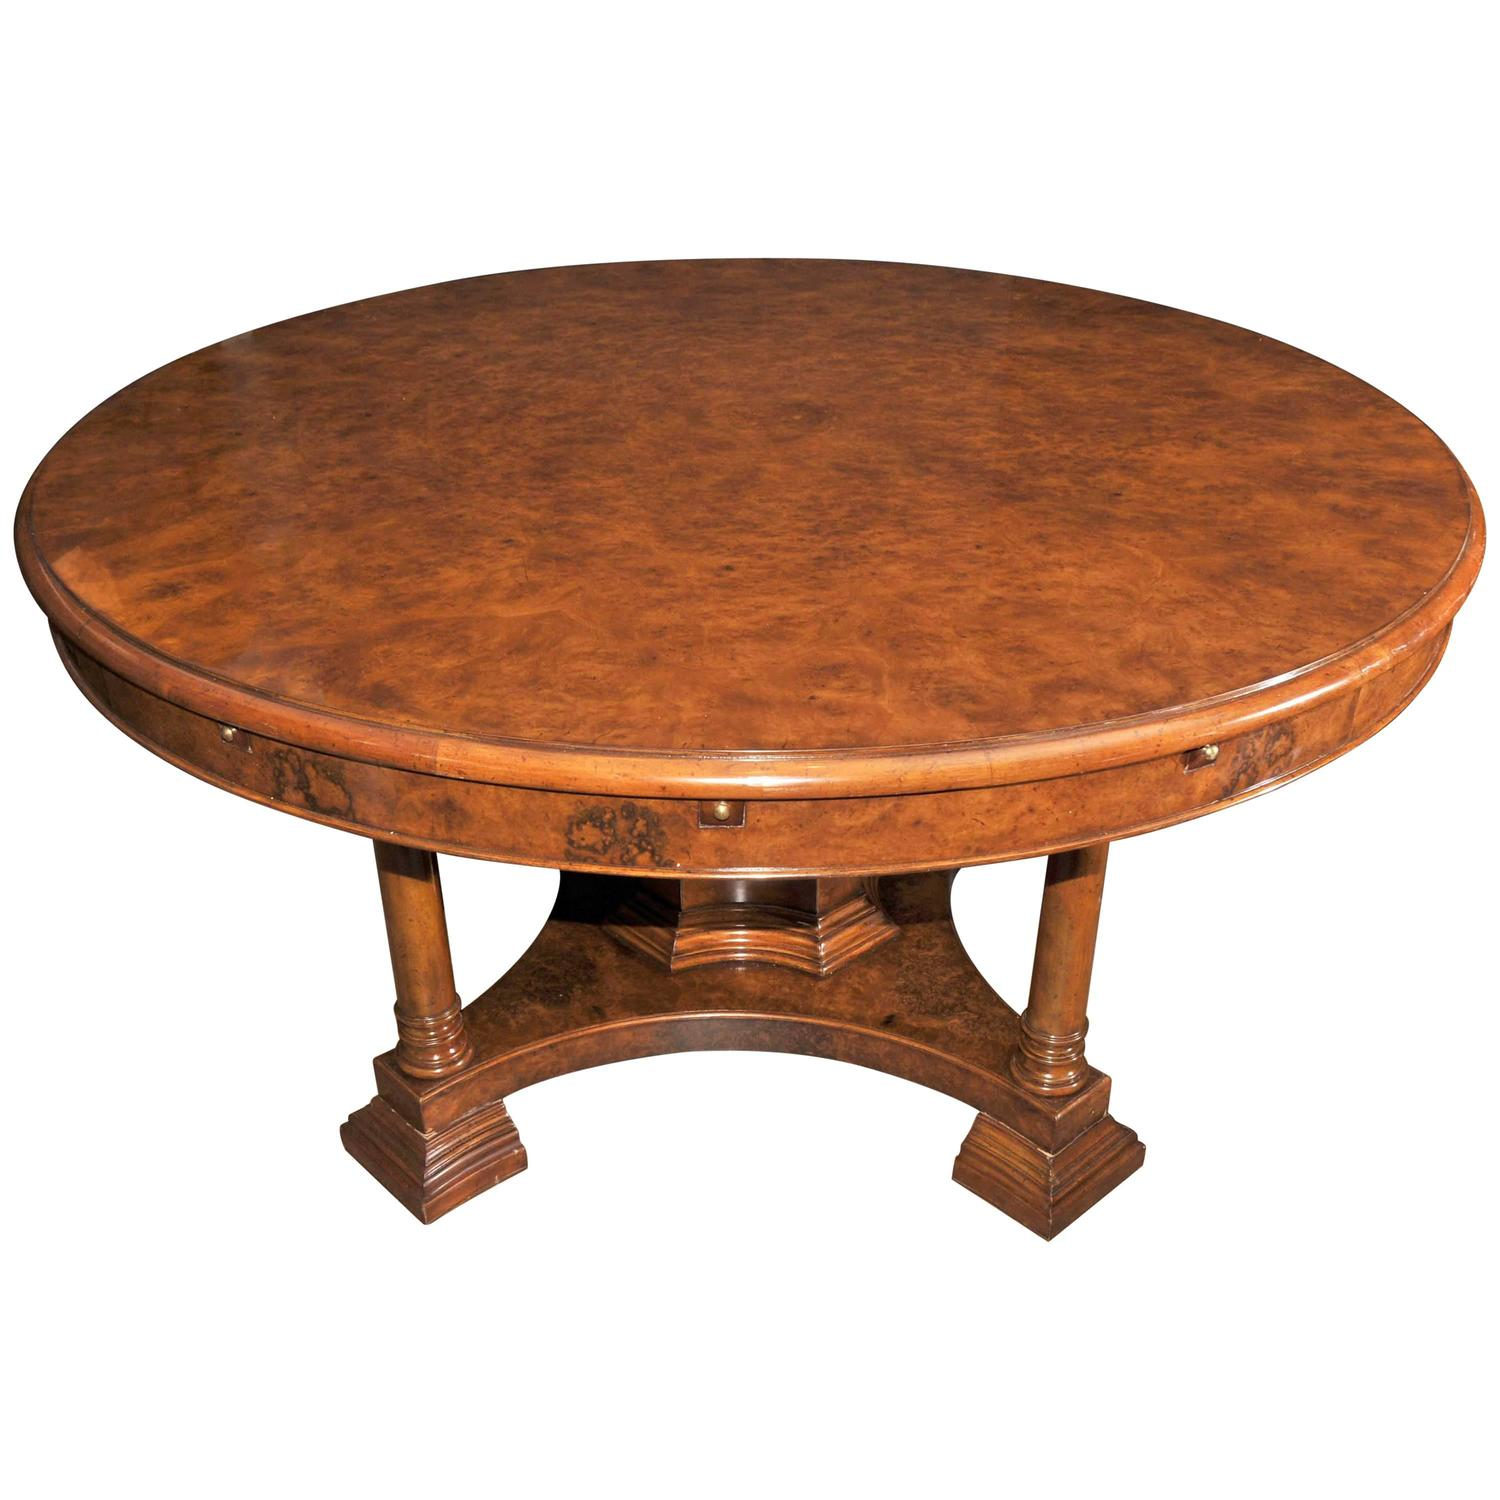 Walnut Regency Jupe Table Extending Round Dining Table At 1stdibs